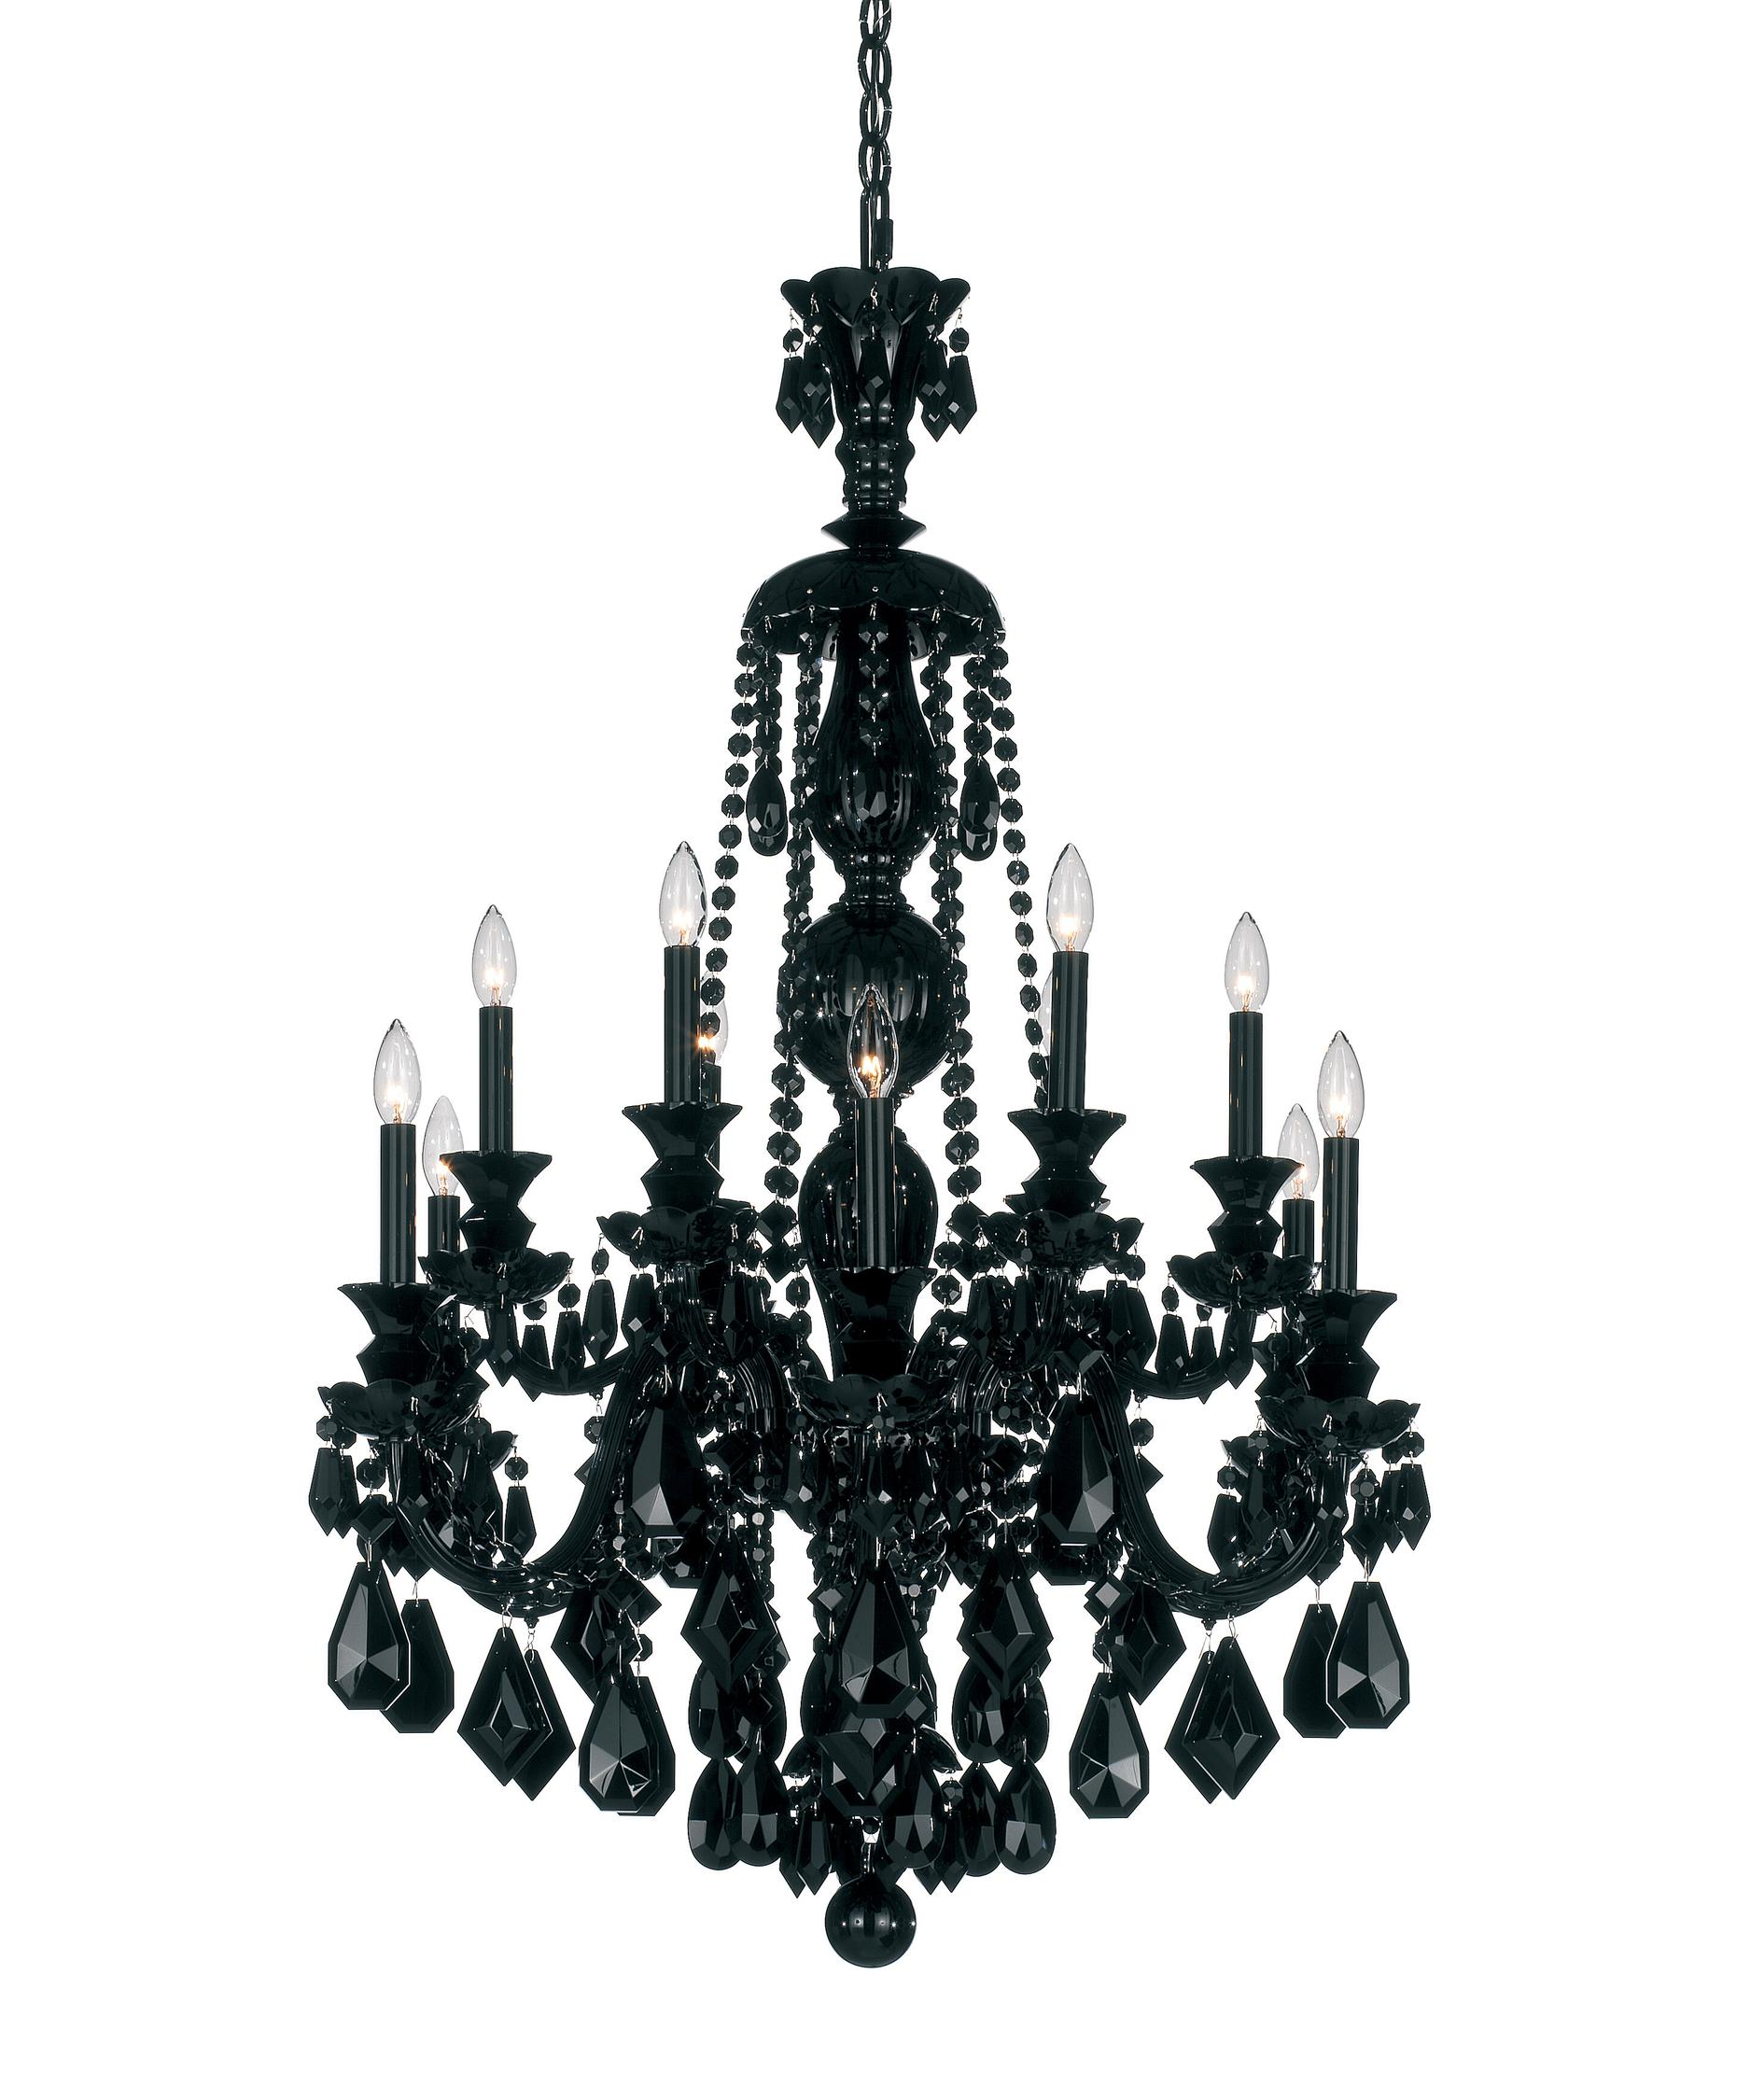 schonbek 5708bk hamilton black 30 inch wide 12 light chandelier capitol lighting - Schonbek Lighting